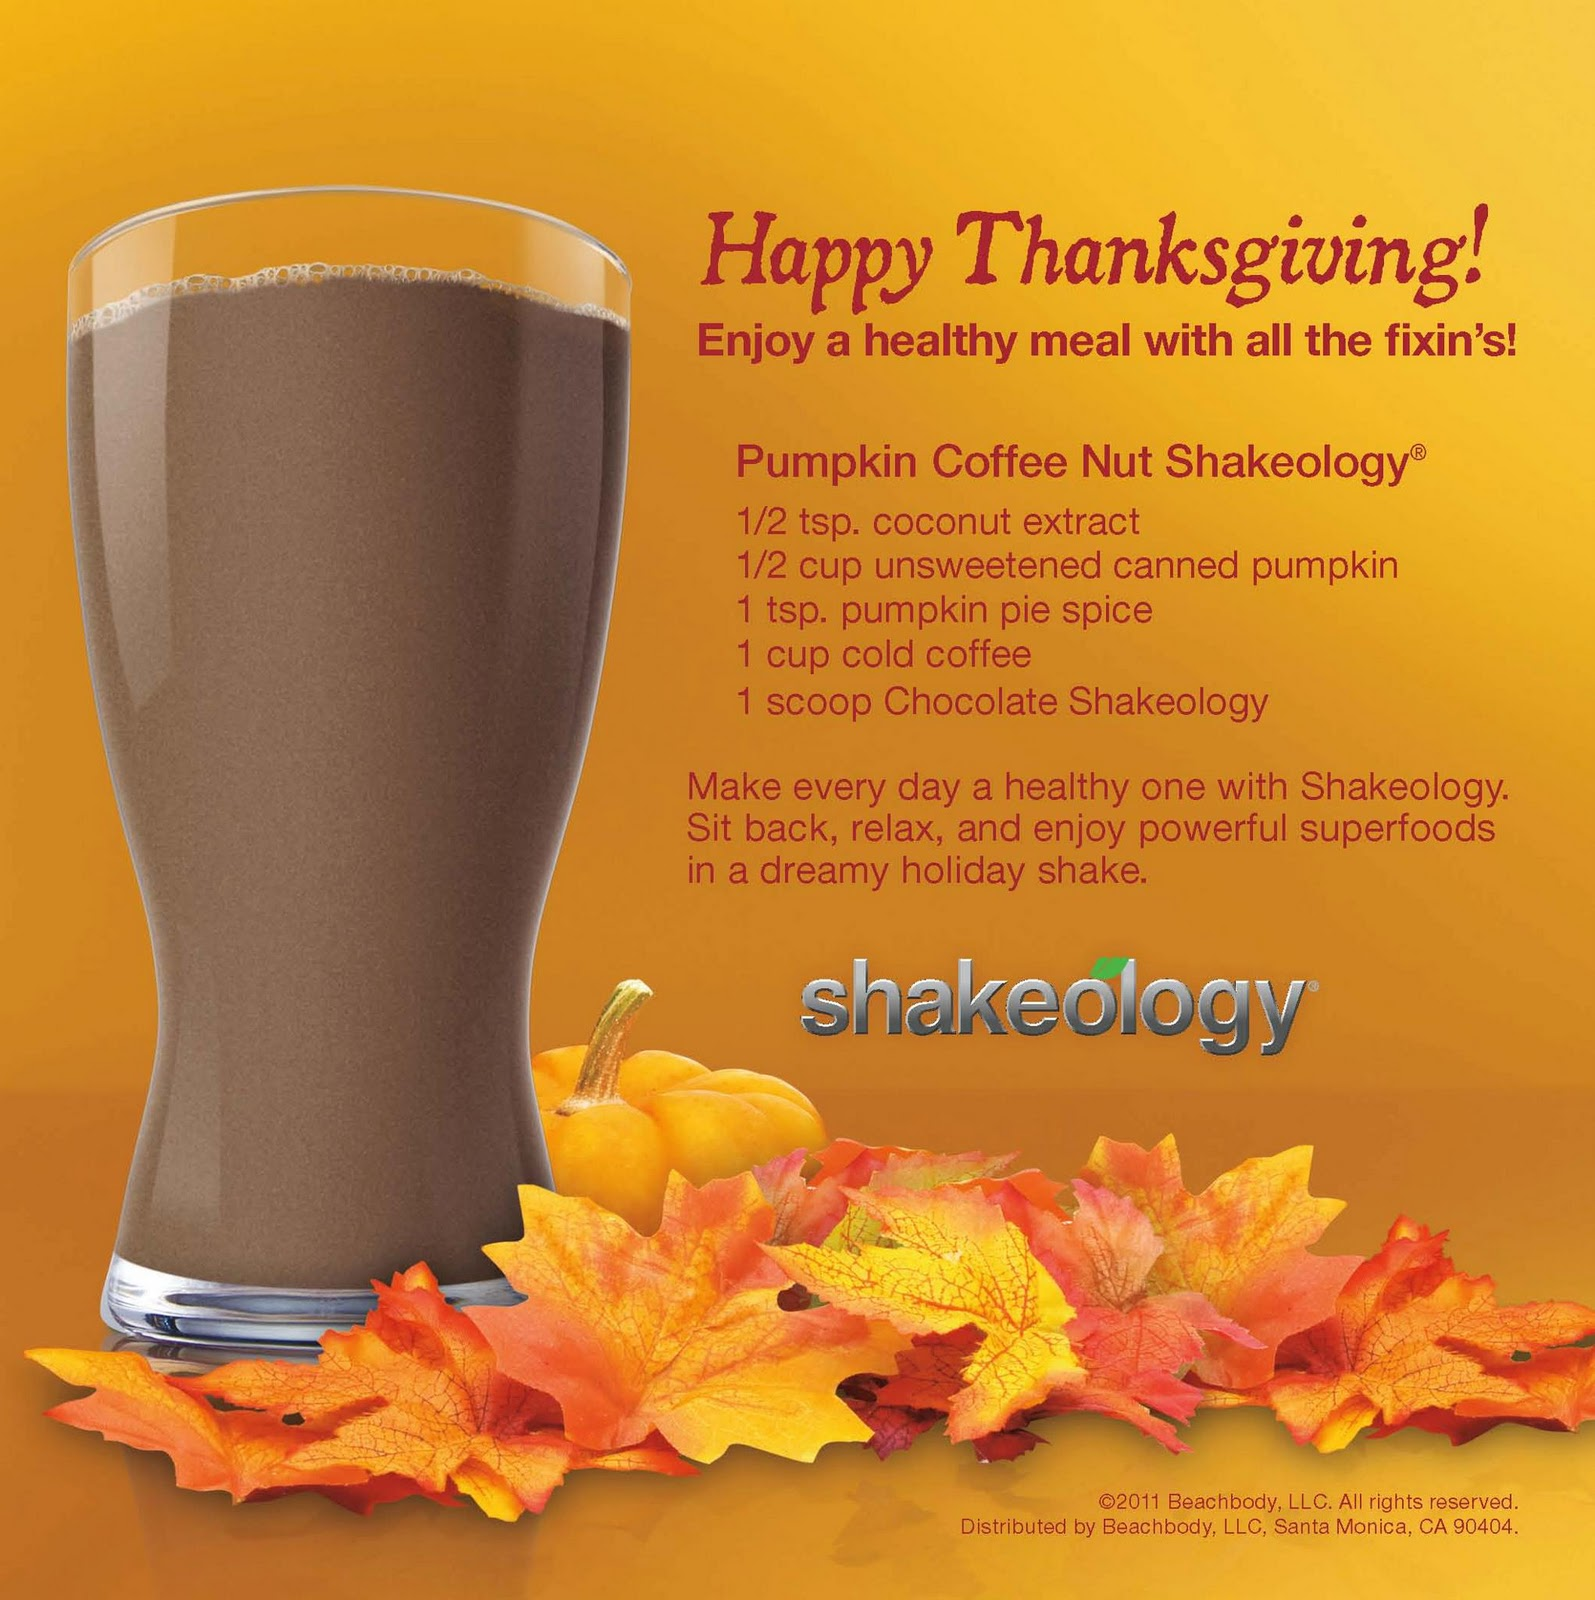 Committed to Get Fit: Holiday Shakeology Recipes